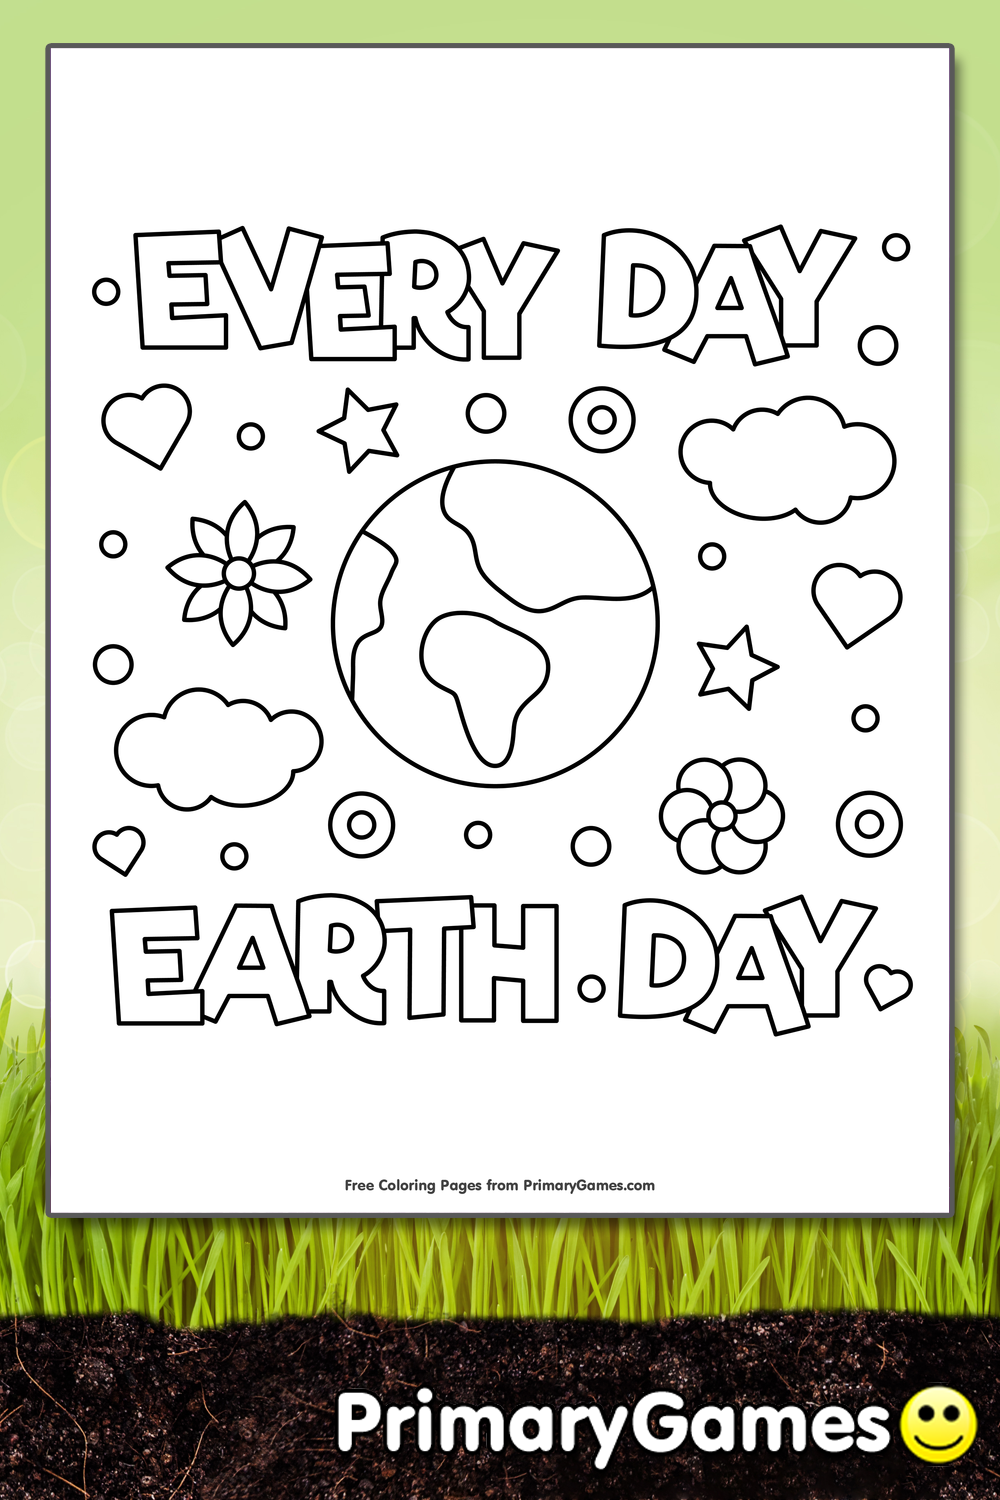 Every Day Earth Day Coloring Page